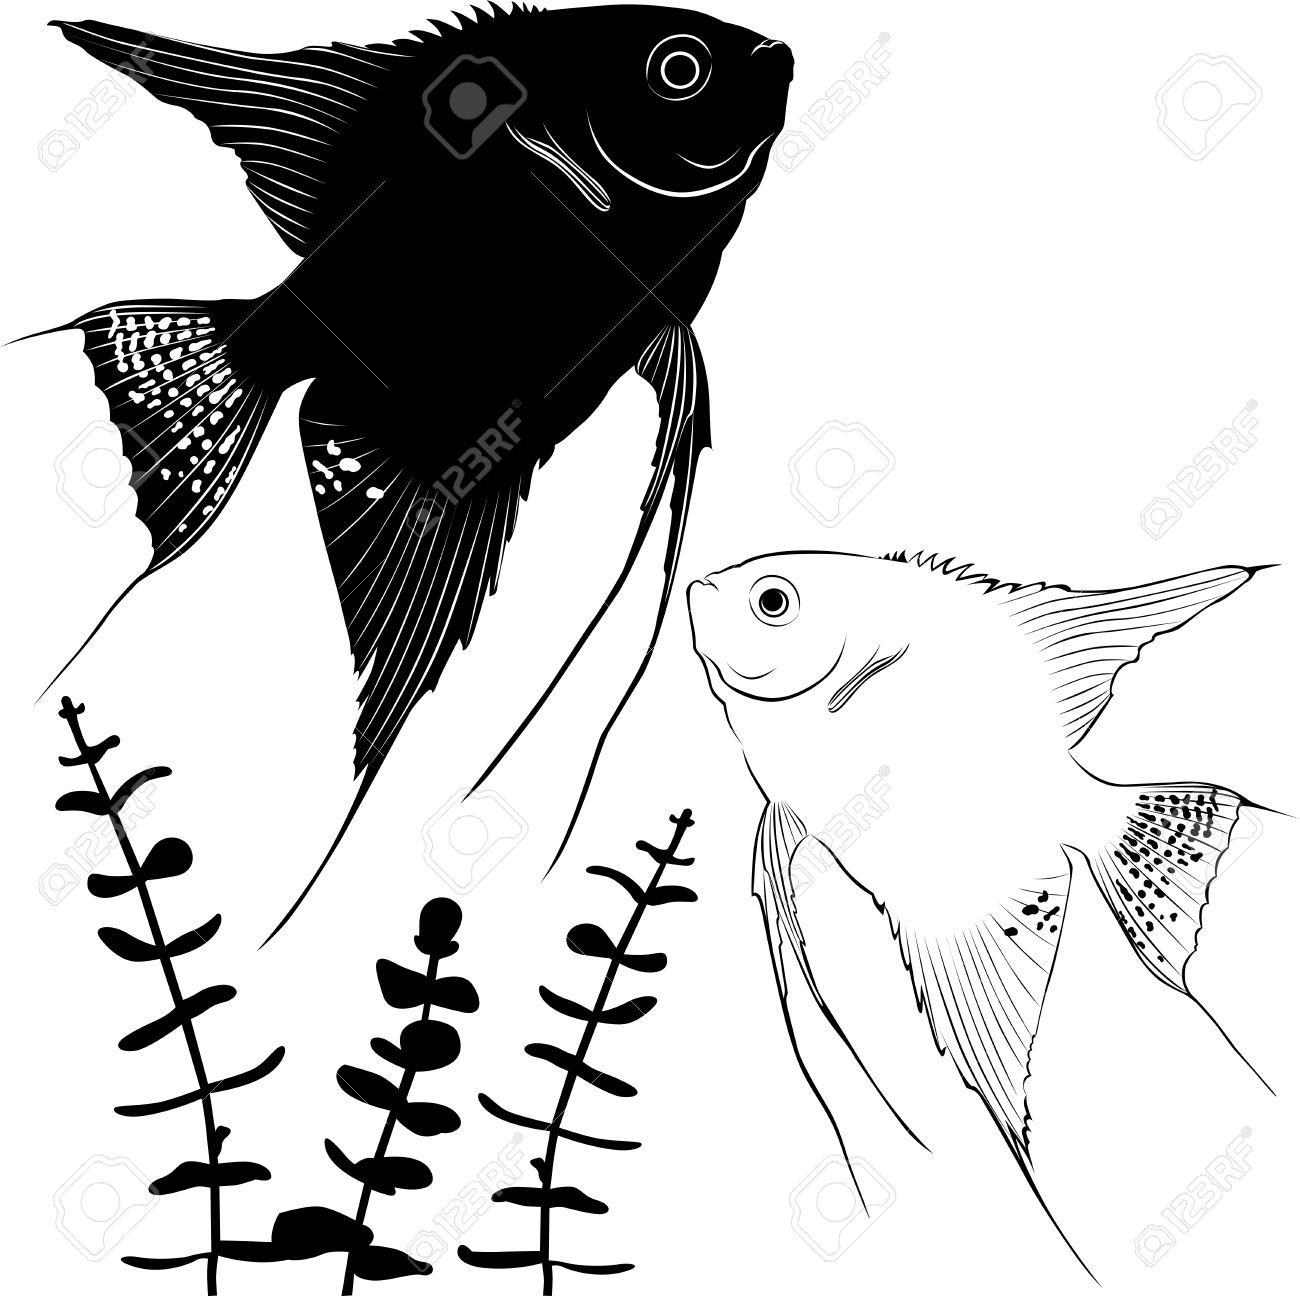 1 226 angelfish cliparts stock vector and royalty free angelfish